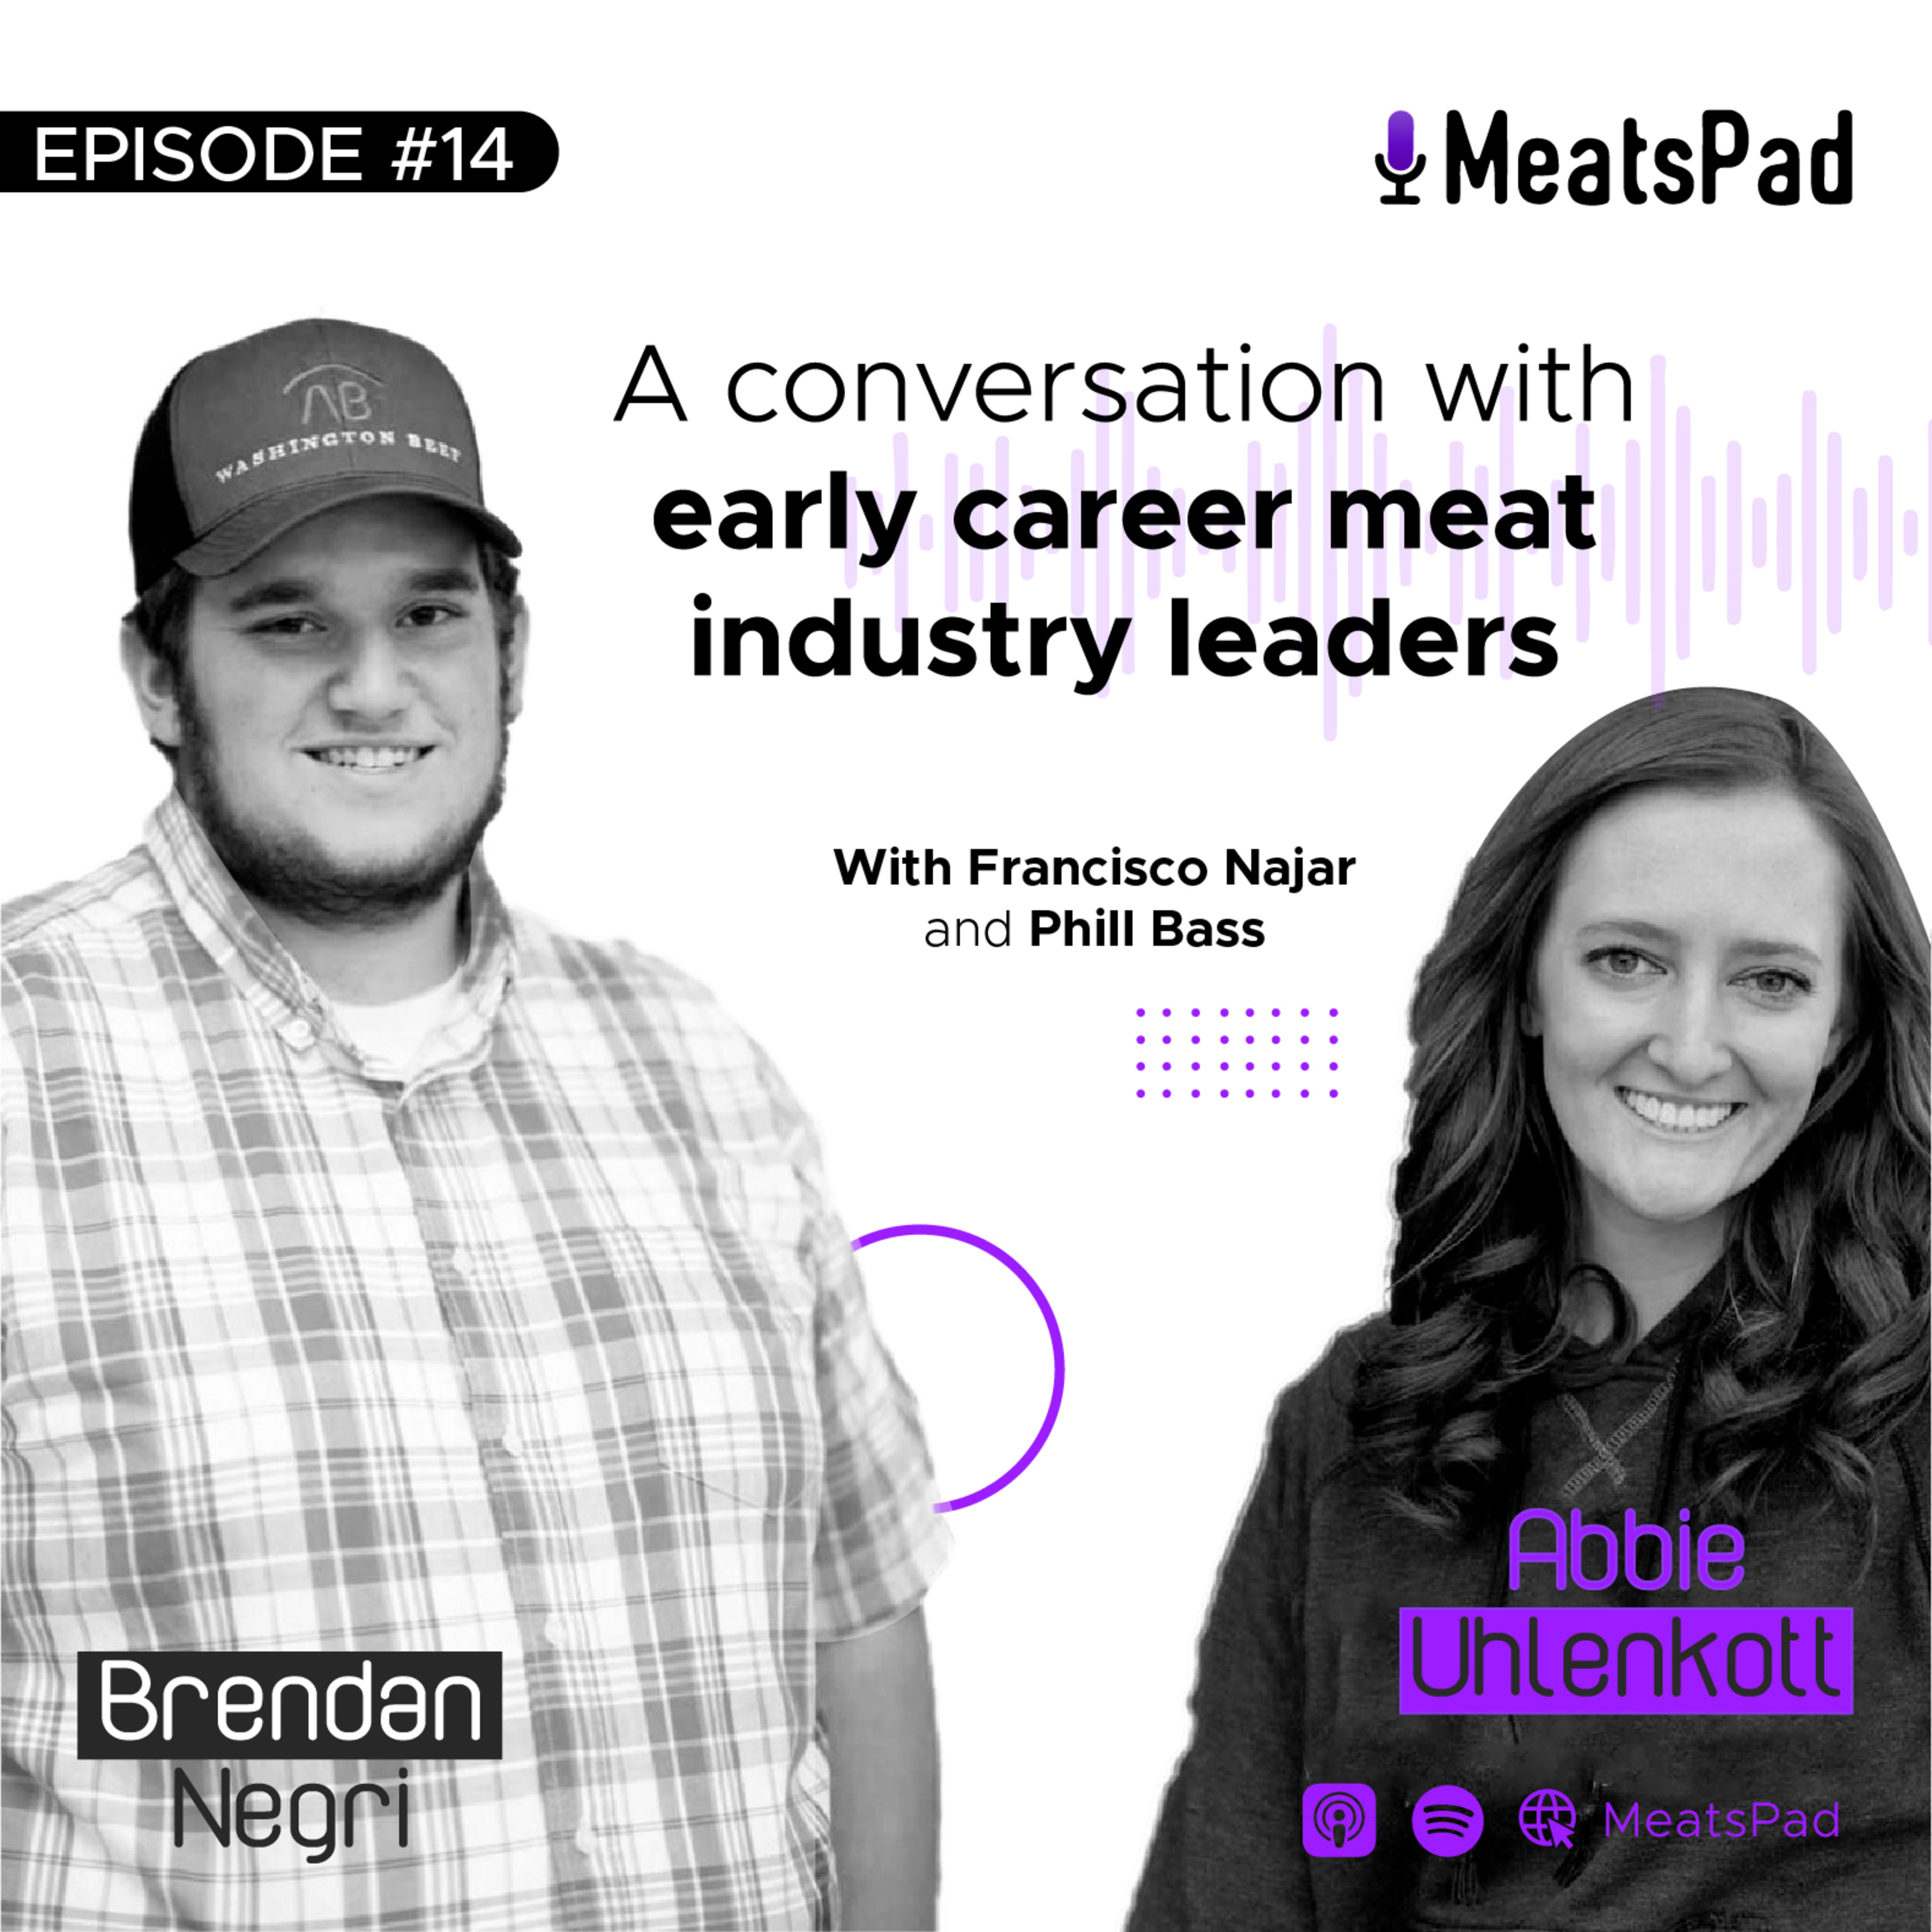 A conversation with early career meat industry leaders